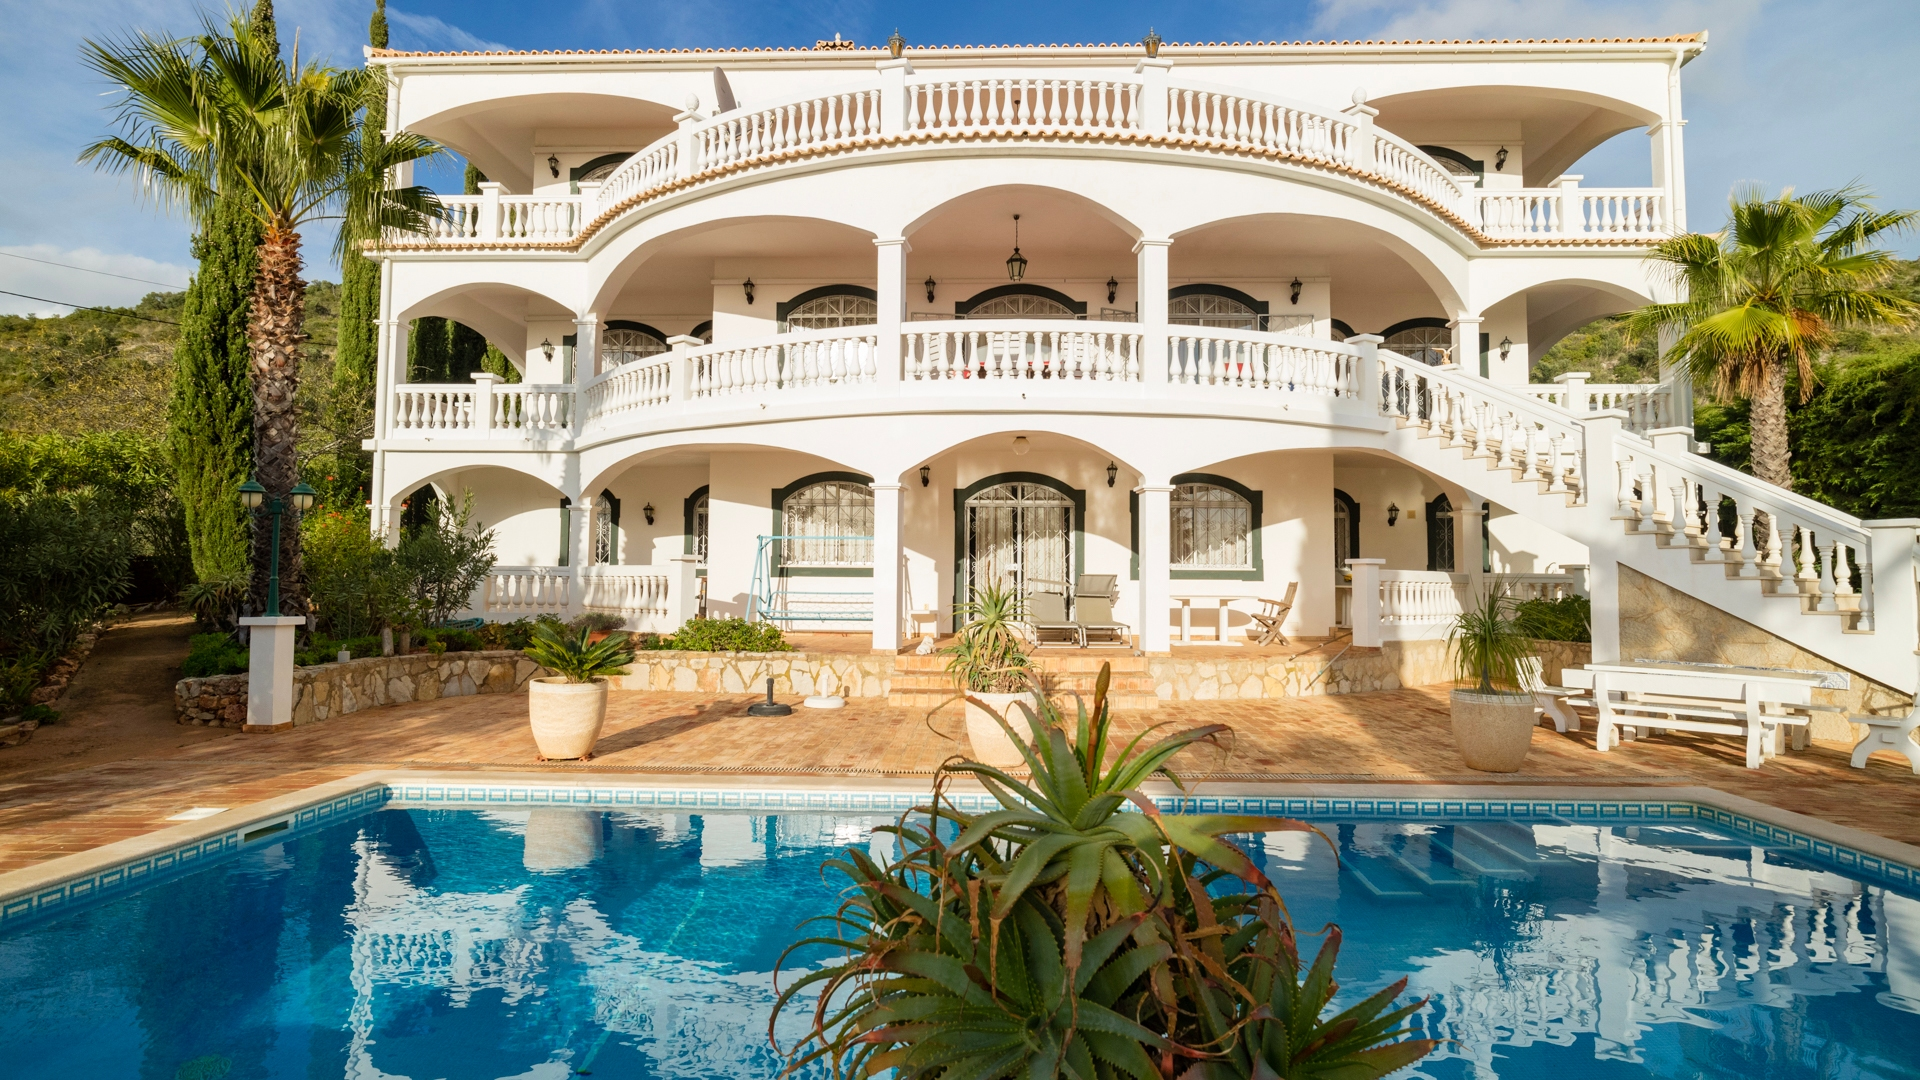 Immense 6 Bedroom Colonial Style Villa with Panoramic Sea Views, Santa Bárbara de Nexe | VM1299 This colossal property has 2 identical floors with scope for remodelling the living areas as desired. Panoramic sea views and mature gardens give this property a regal feeling